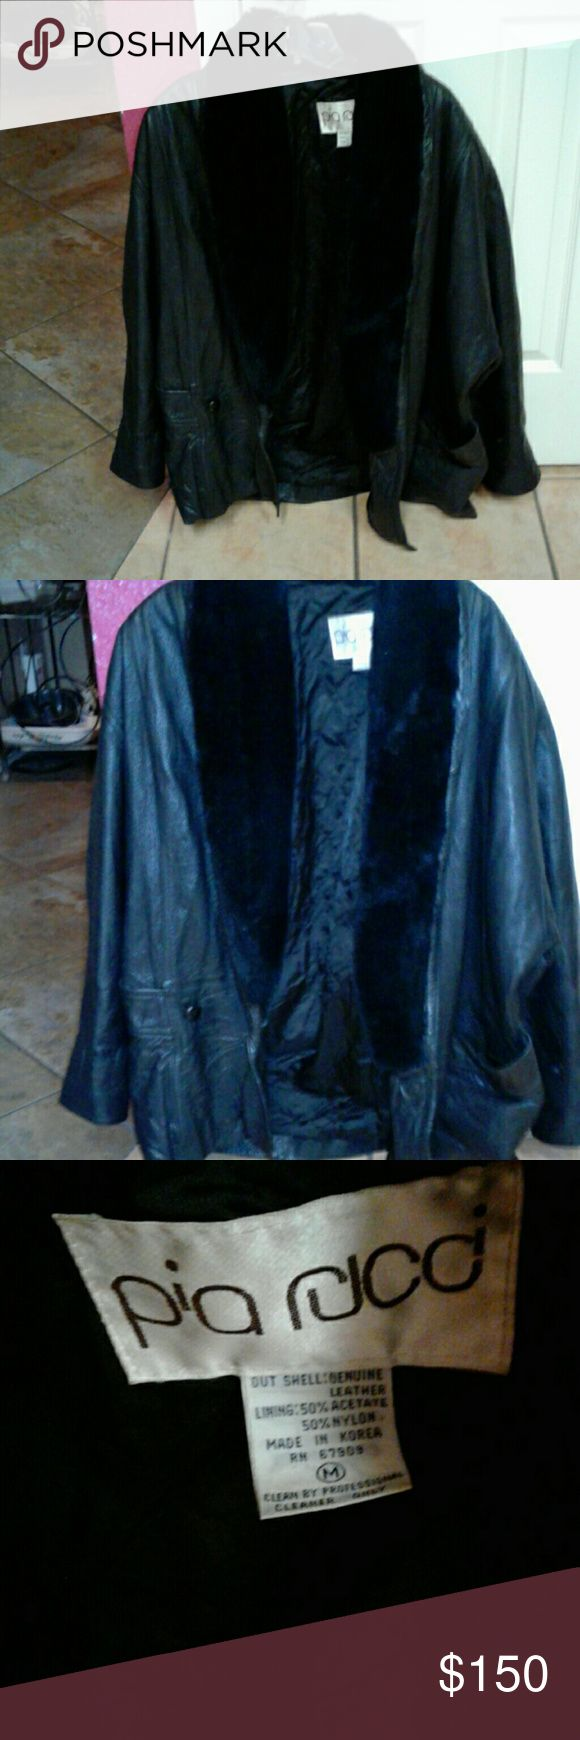 """Leather Jacket!  """"M"""" Pus Rjco, heavy! Beautiful M Black Leather Jacket, 2 deep front pockets, button closure, faux fur around neck and front sides only, lining is quilted.  Interesting design with Dolman sleeves, adjustable sleeve llengths, a simple single cuff can be made 2 fit shorter arms.  It's very, very warm, gifted 2 me by Veterinarian friend who used it once in Alaska while he was chosen 2 attend to annual huge dog sled race dogs.  In Austin, we do NOT ever need such heavy jackets…"""